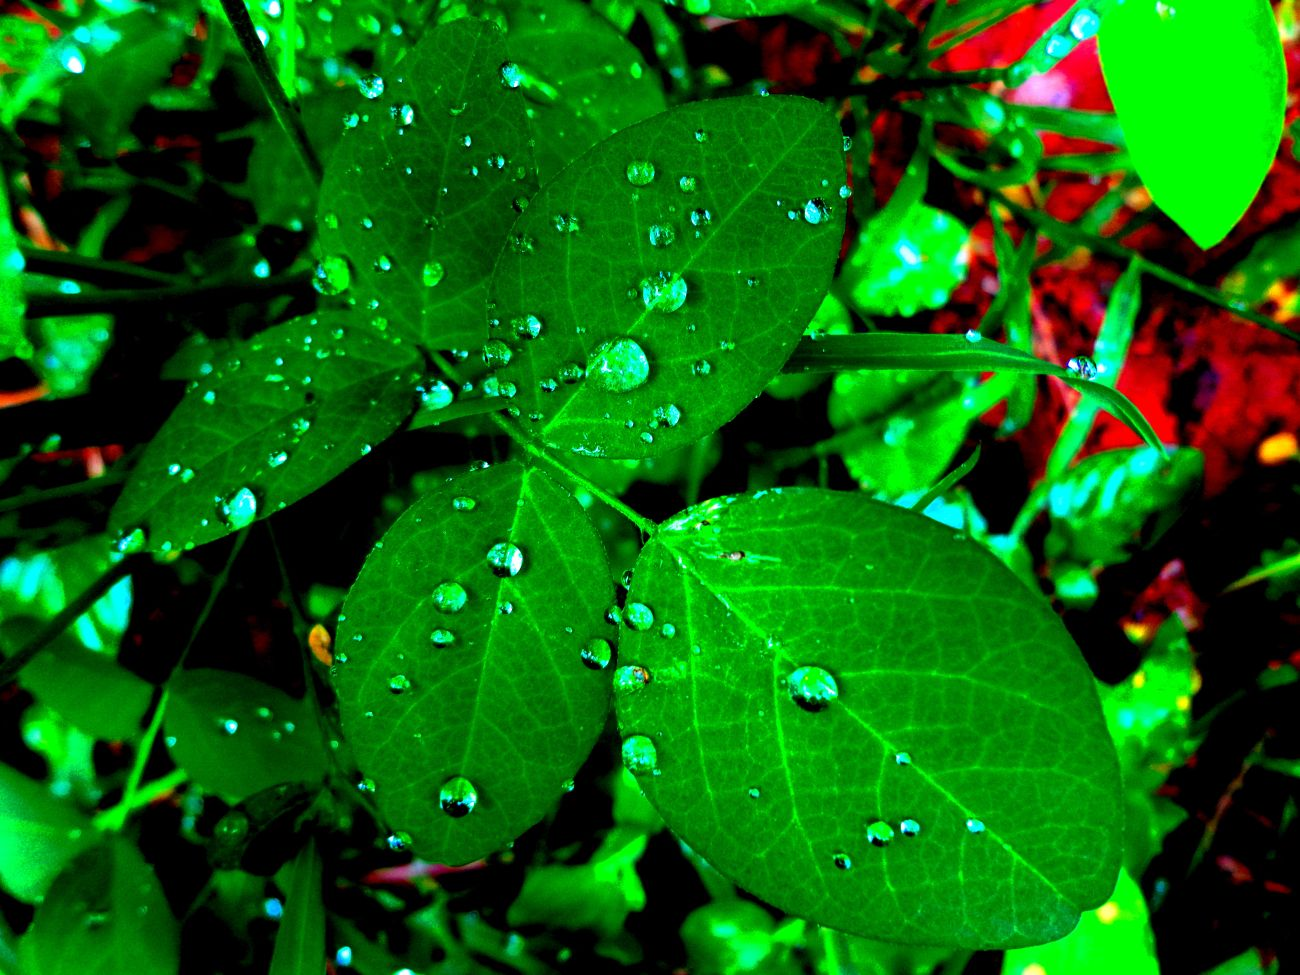 rain_drops_on_leaves_t